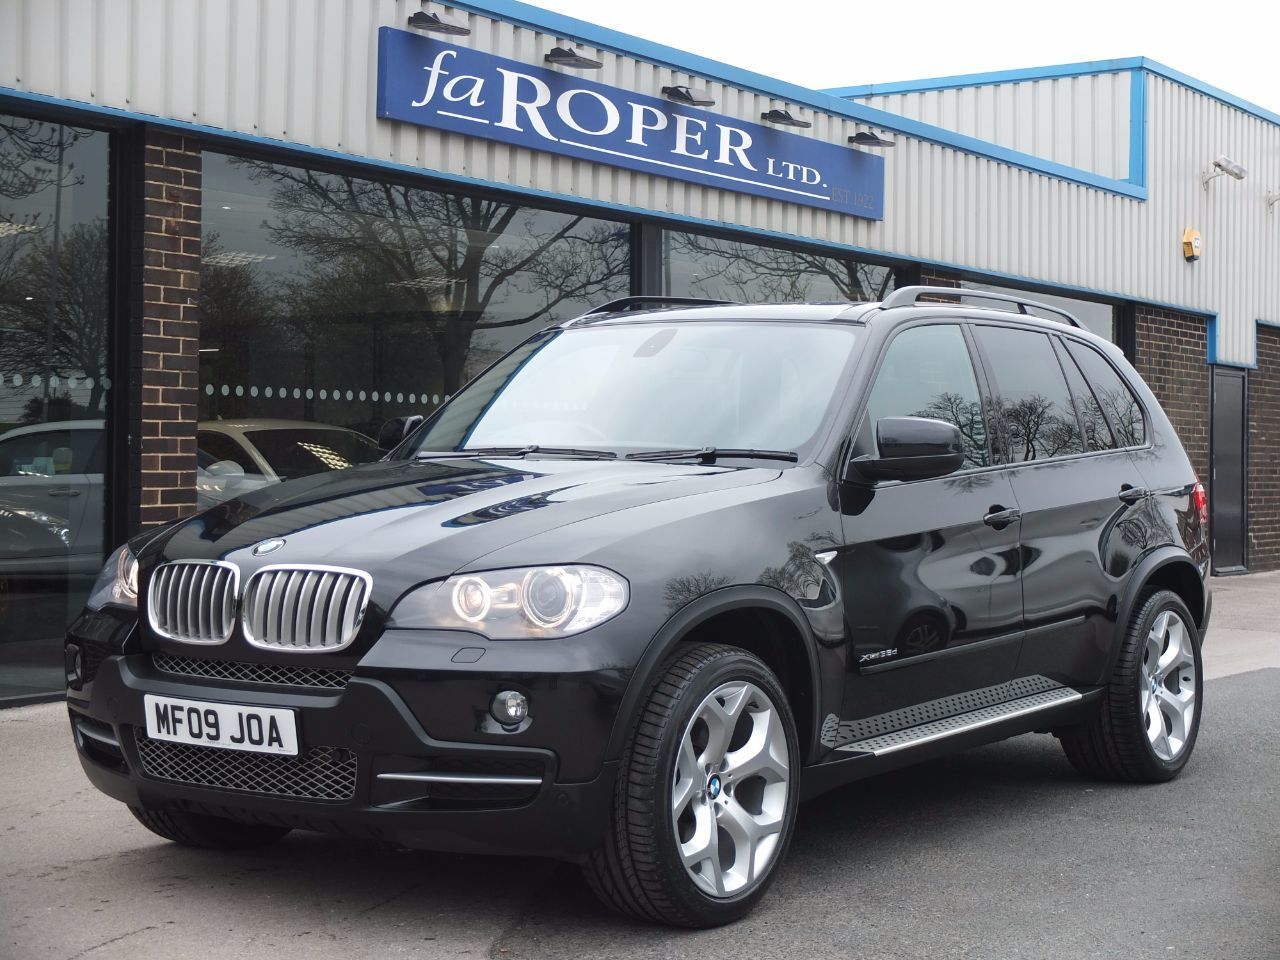 BMW X5 3.0 xDrive35d SE Auto, Dynamic and Media, Pan Roof +++ Spec Estate Diesel Black Sapphire MetallicBMW X5 3.0 xDrive35d SE Auto, Dynamic and Media, Pan Roof +++ Spec Estate Diesel Black Sapphire Metallic at fa Roper Ltd Bradford